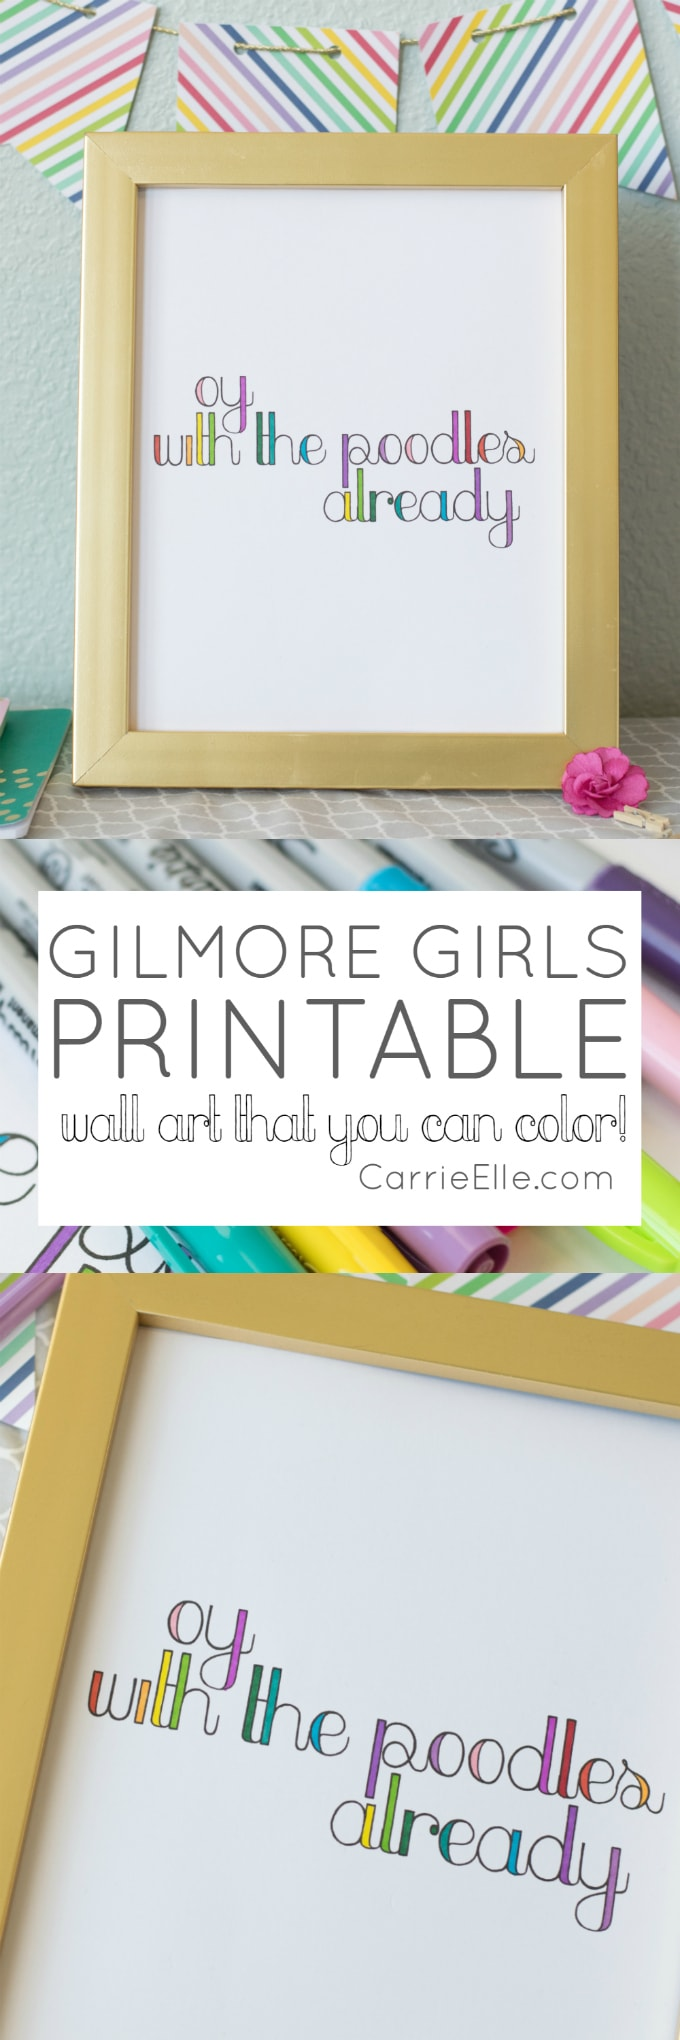 Gilmore Girls Printable Wall Art